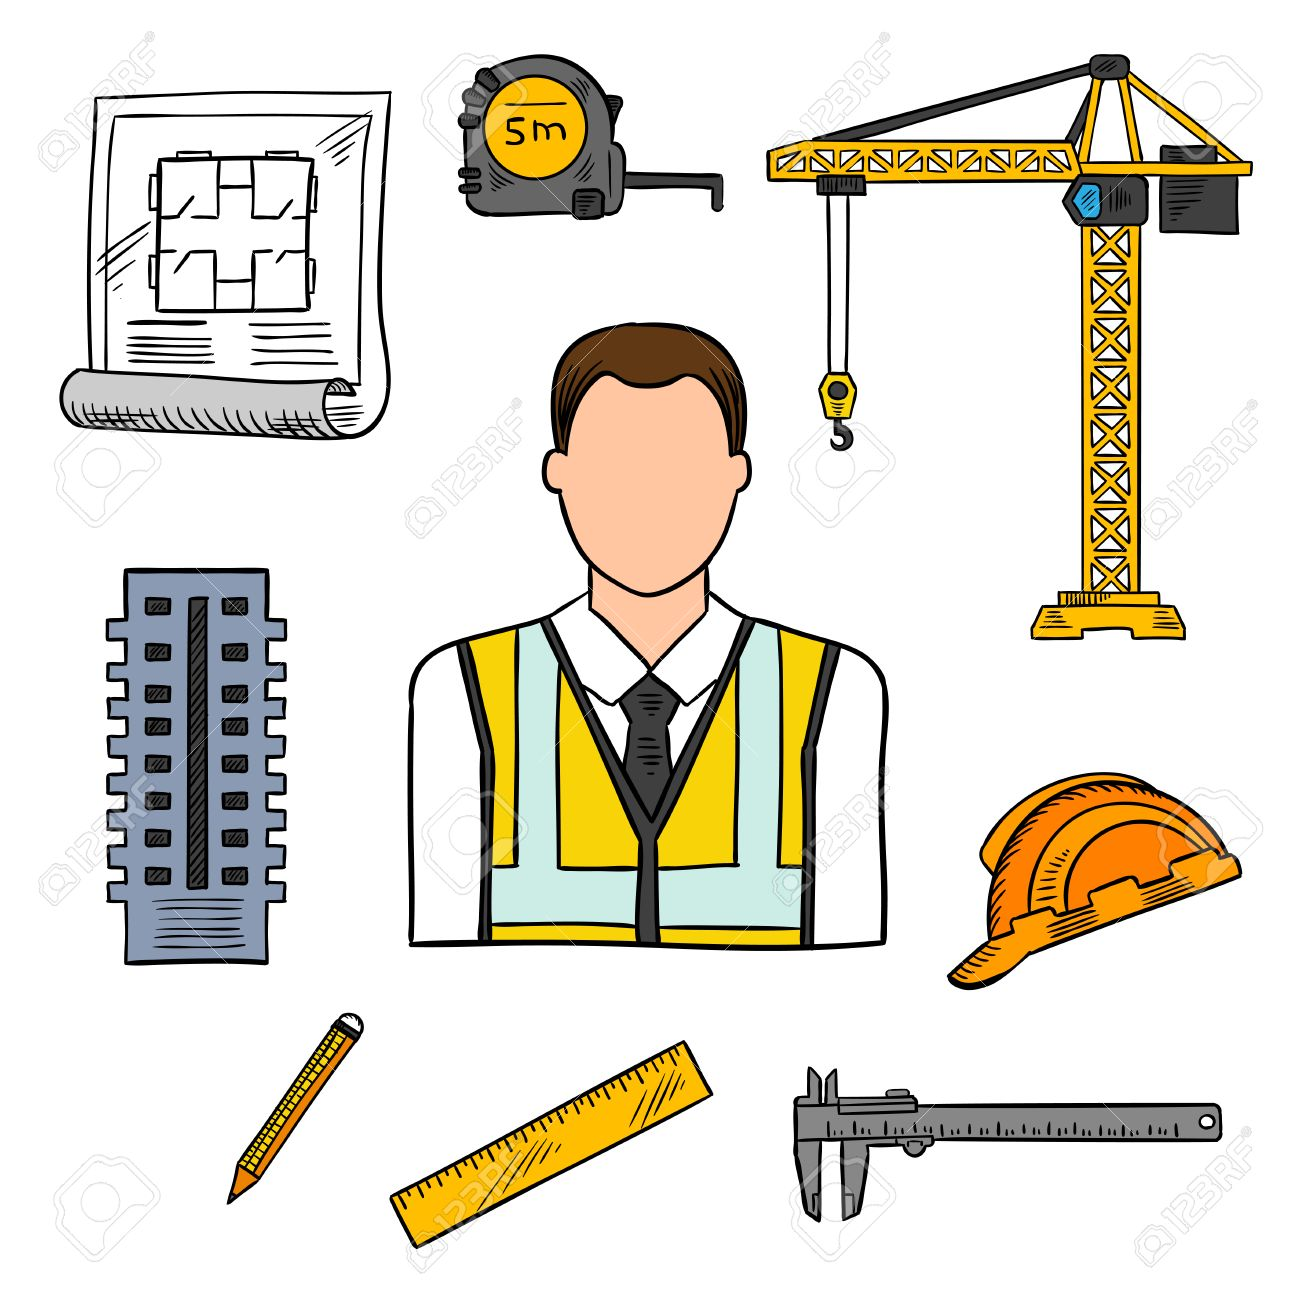 architectural engineering. Civil Engineering Professions Design Of Architectural Engineer In Yellow High Visibility Vest With Architects Drawing,